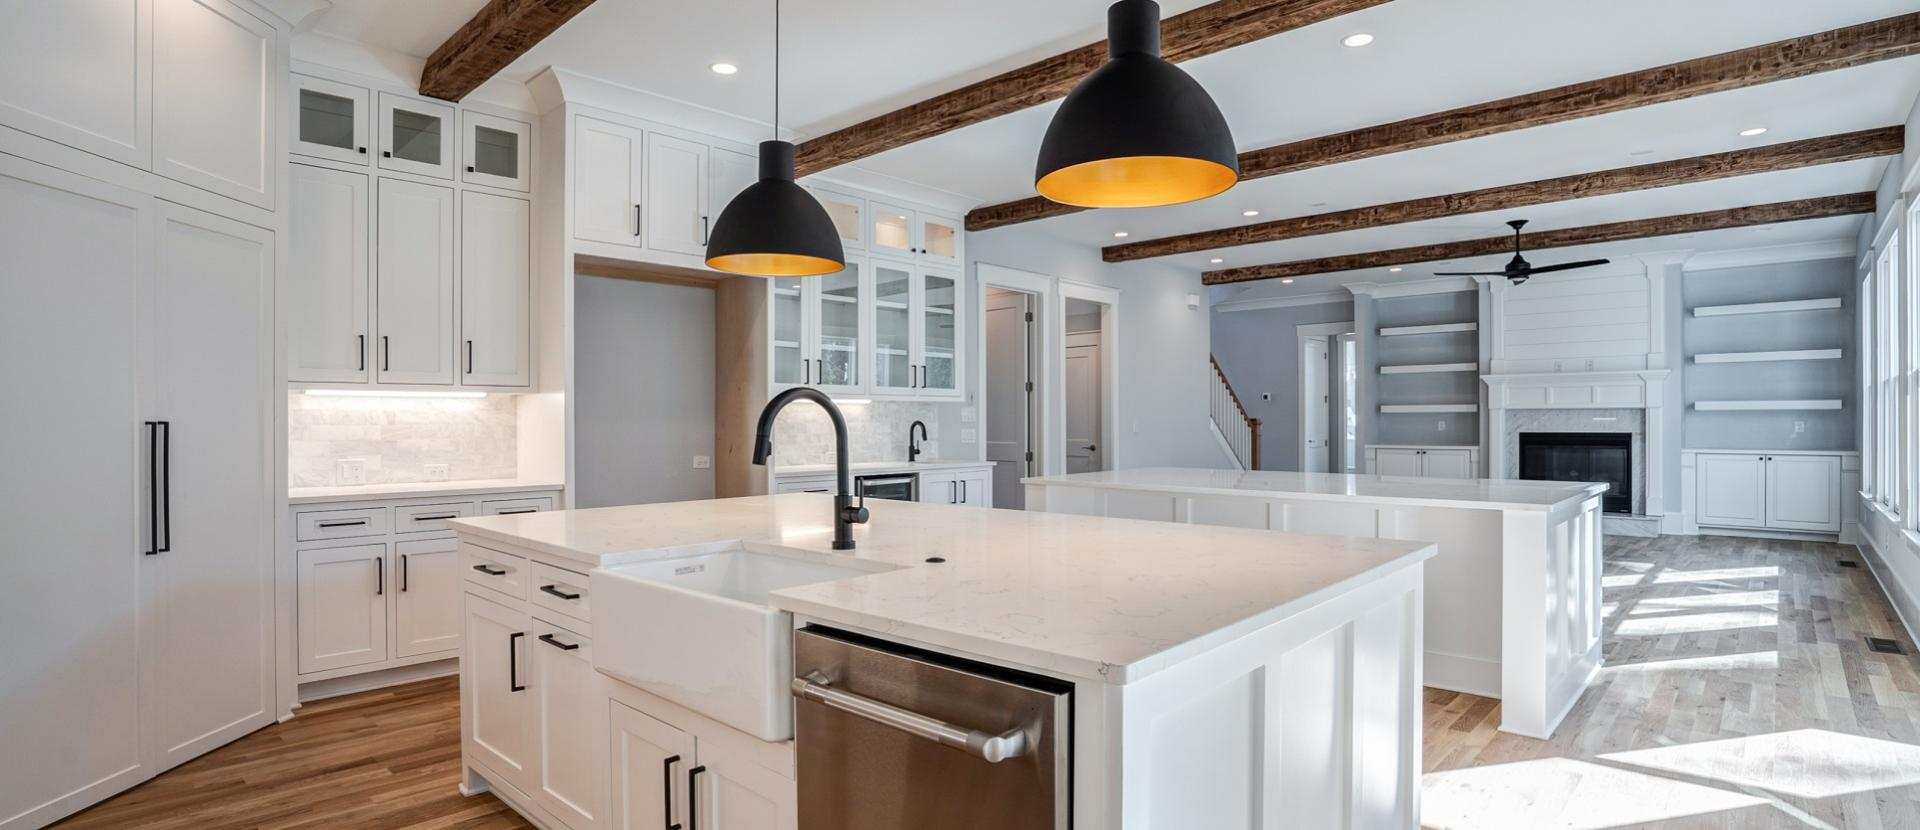 Double Island Kitchen